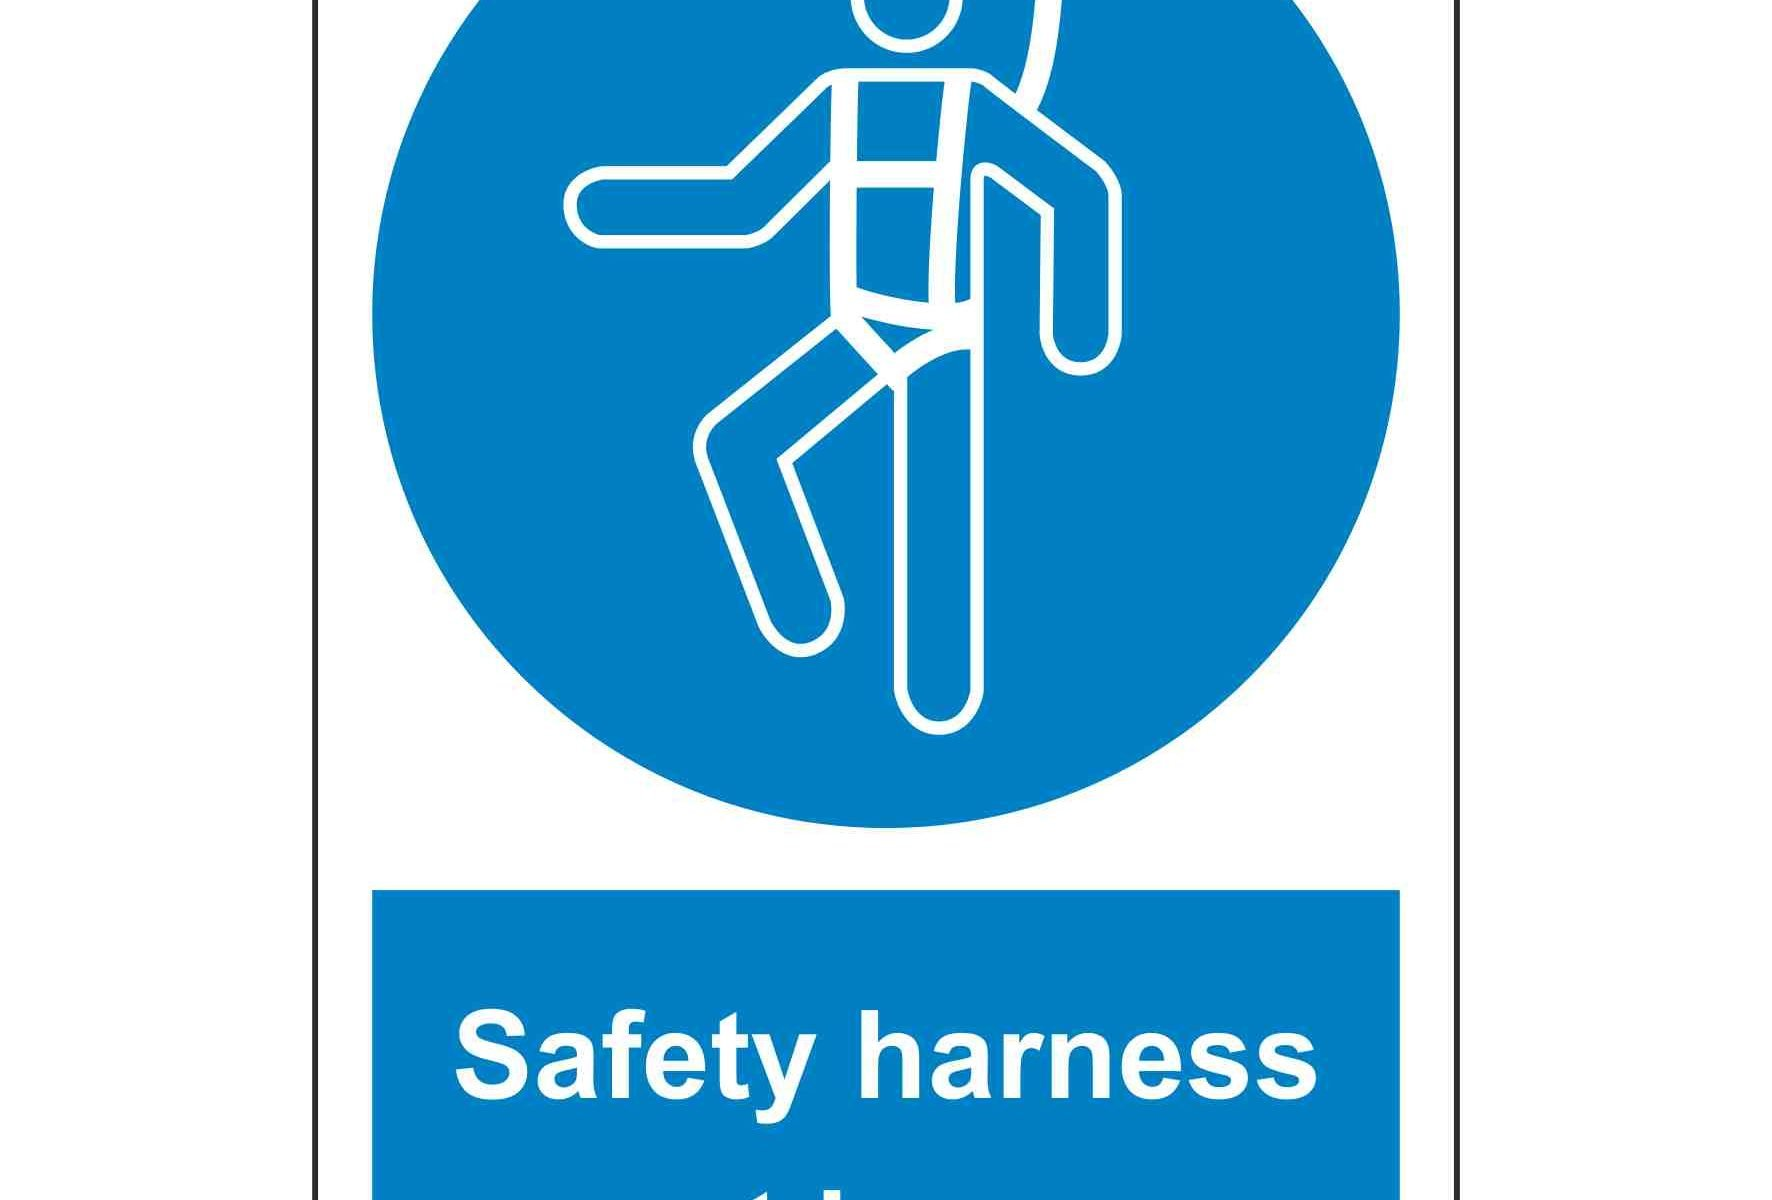 Safety harness must be worn